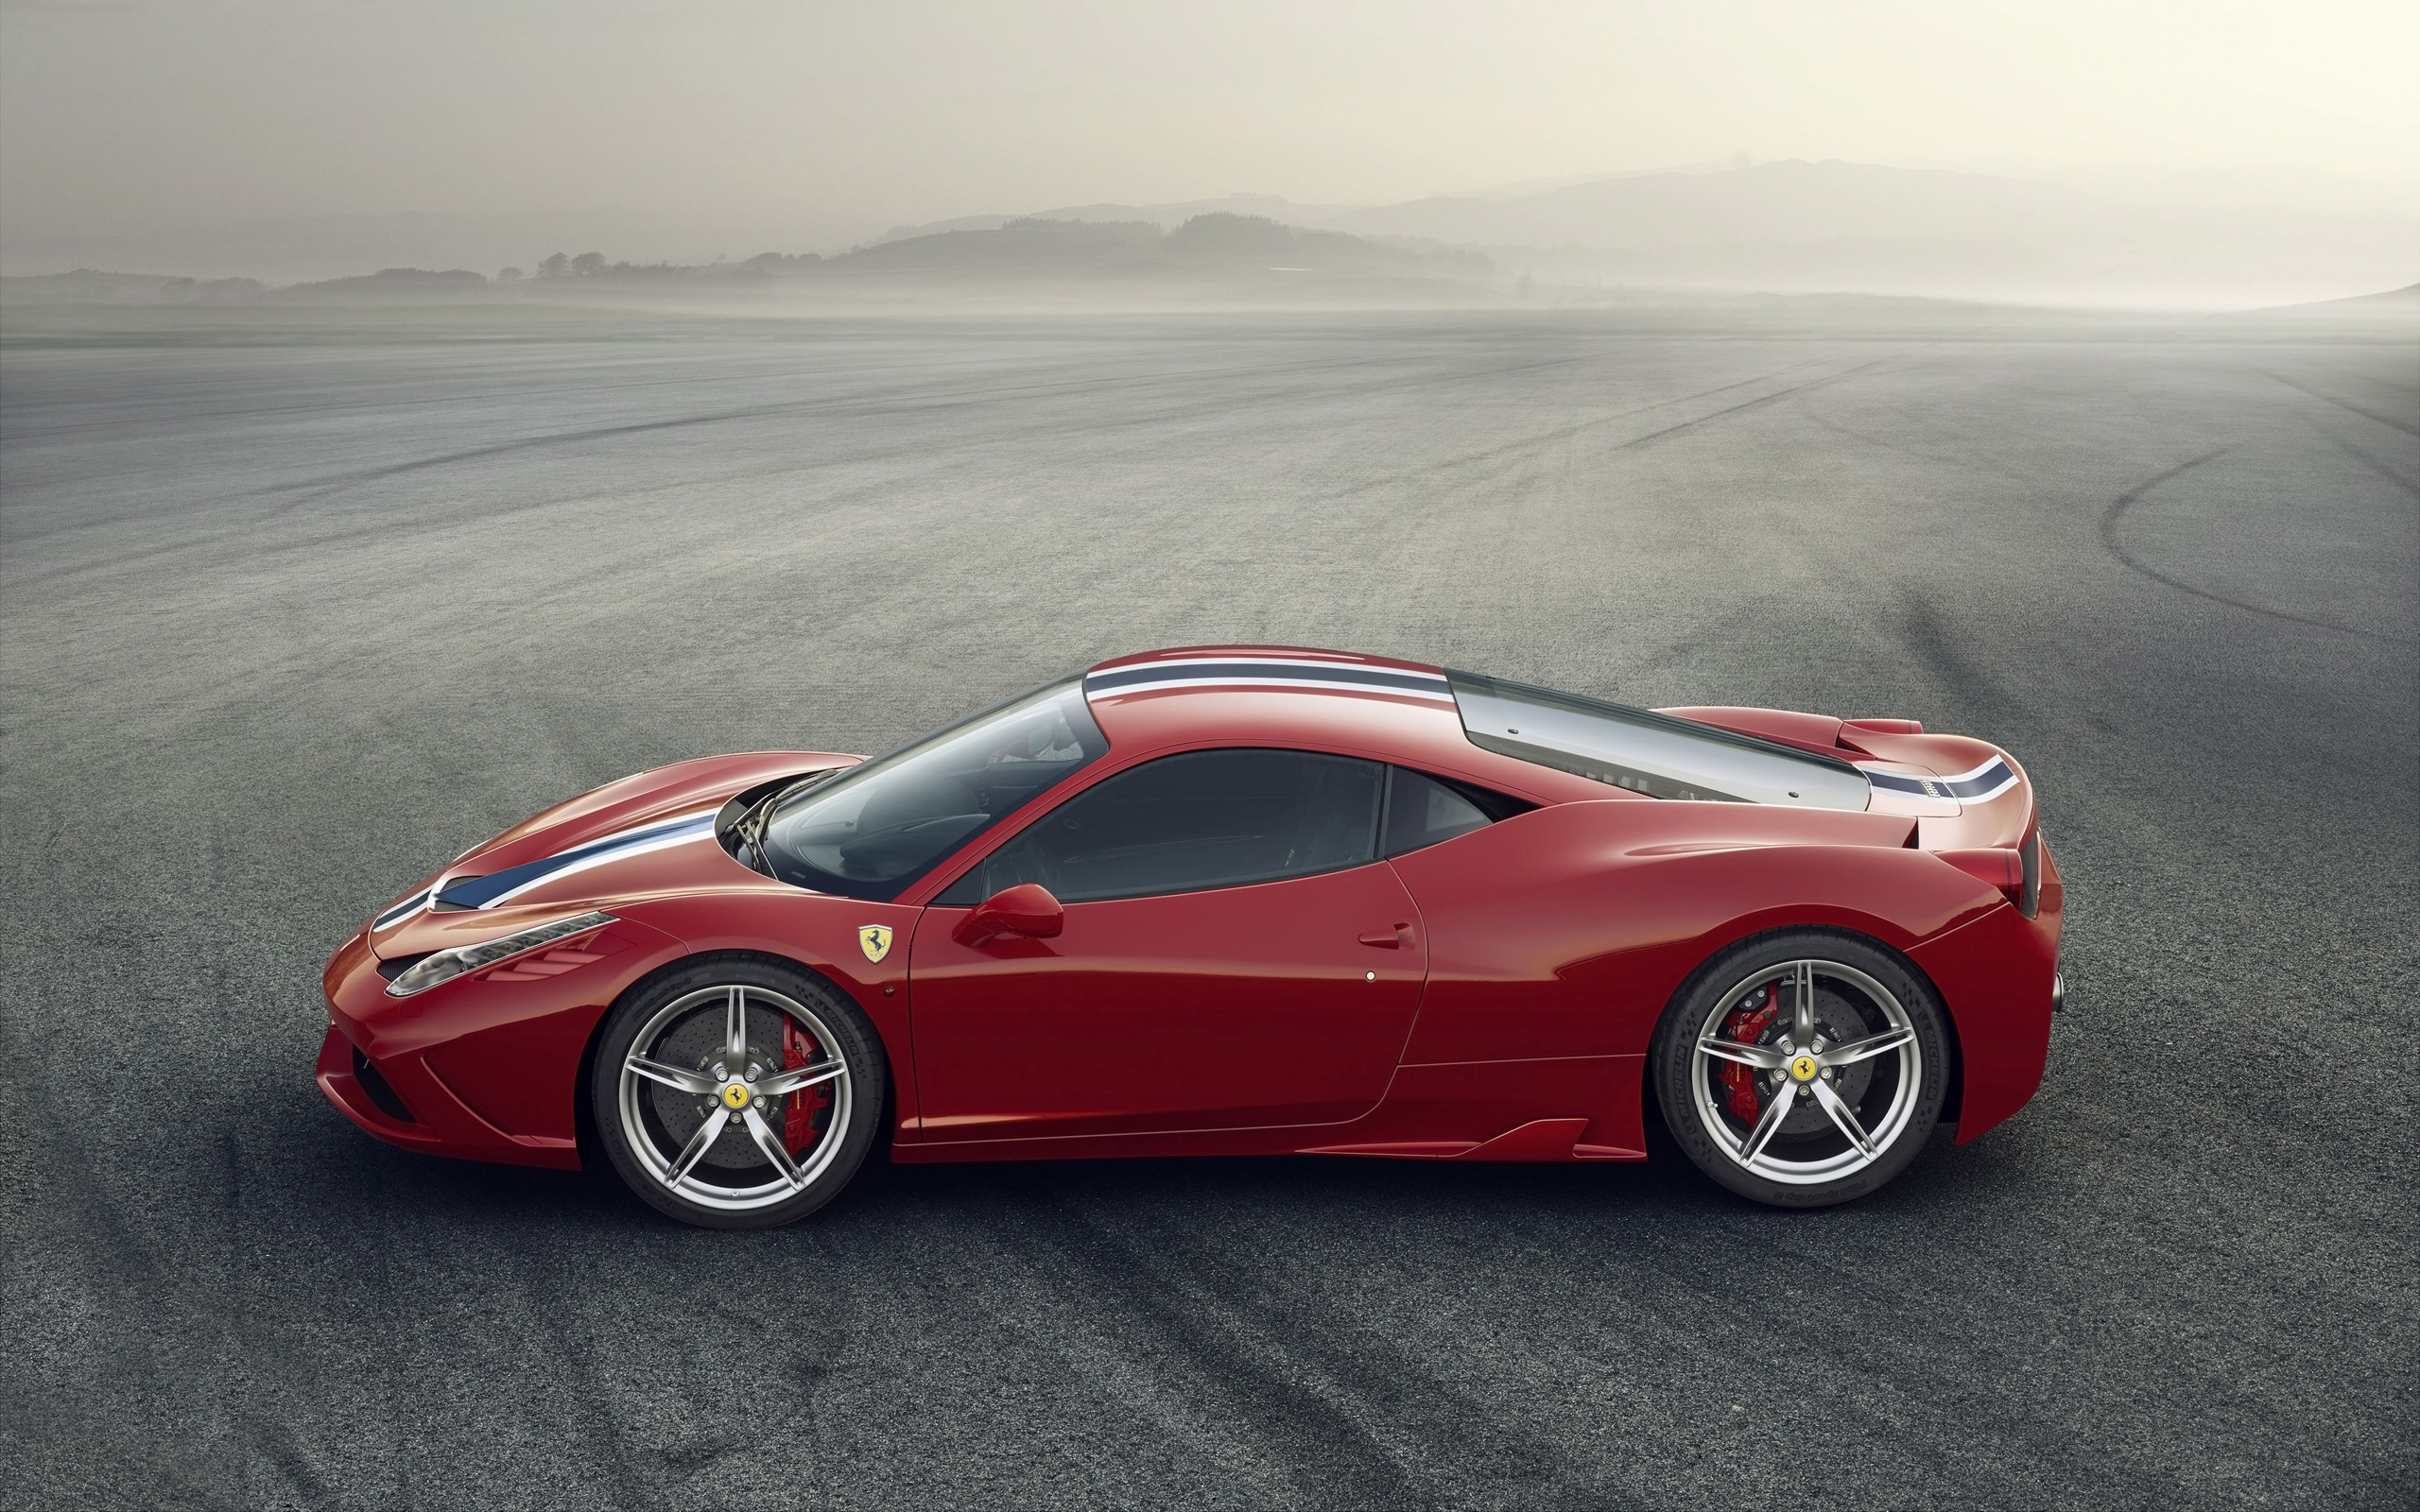 Red cars race cars italian cars wallpapers hd desktop and mobile - 2014 Ferrari 458 Speciale 4 Wallpaper Hd Car Wallpapers